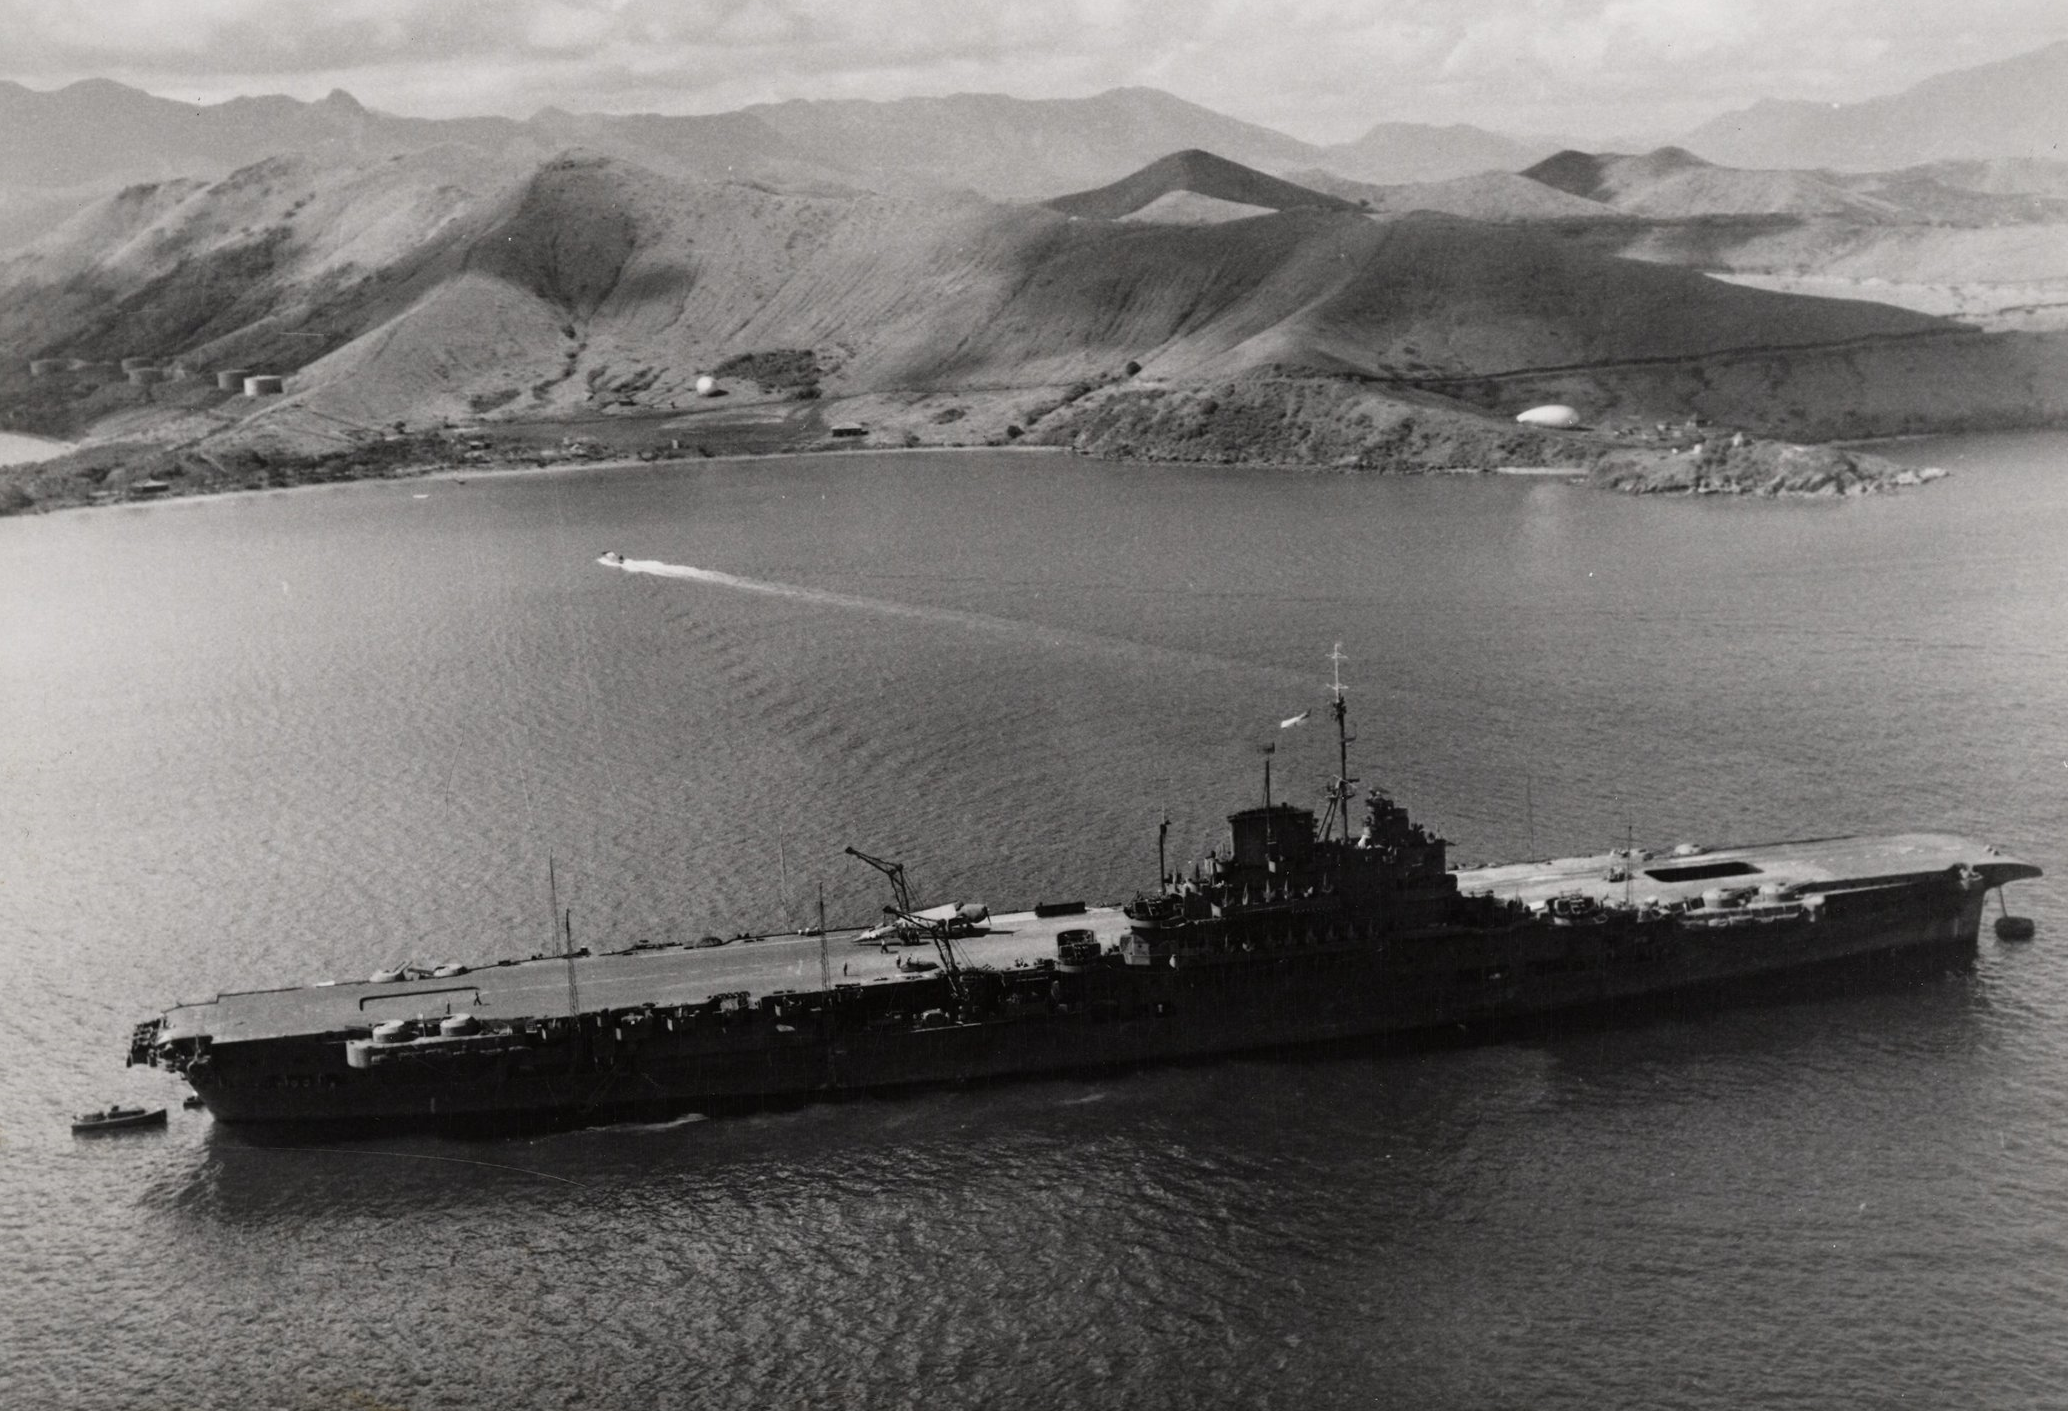 HMS VICTORIOUS moored in Noumea, New Caledonia.